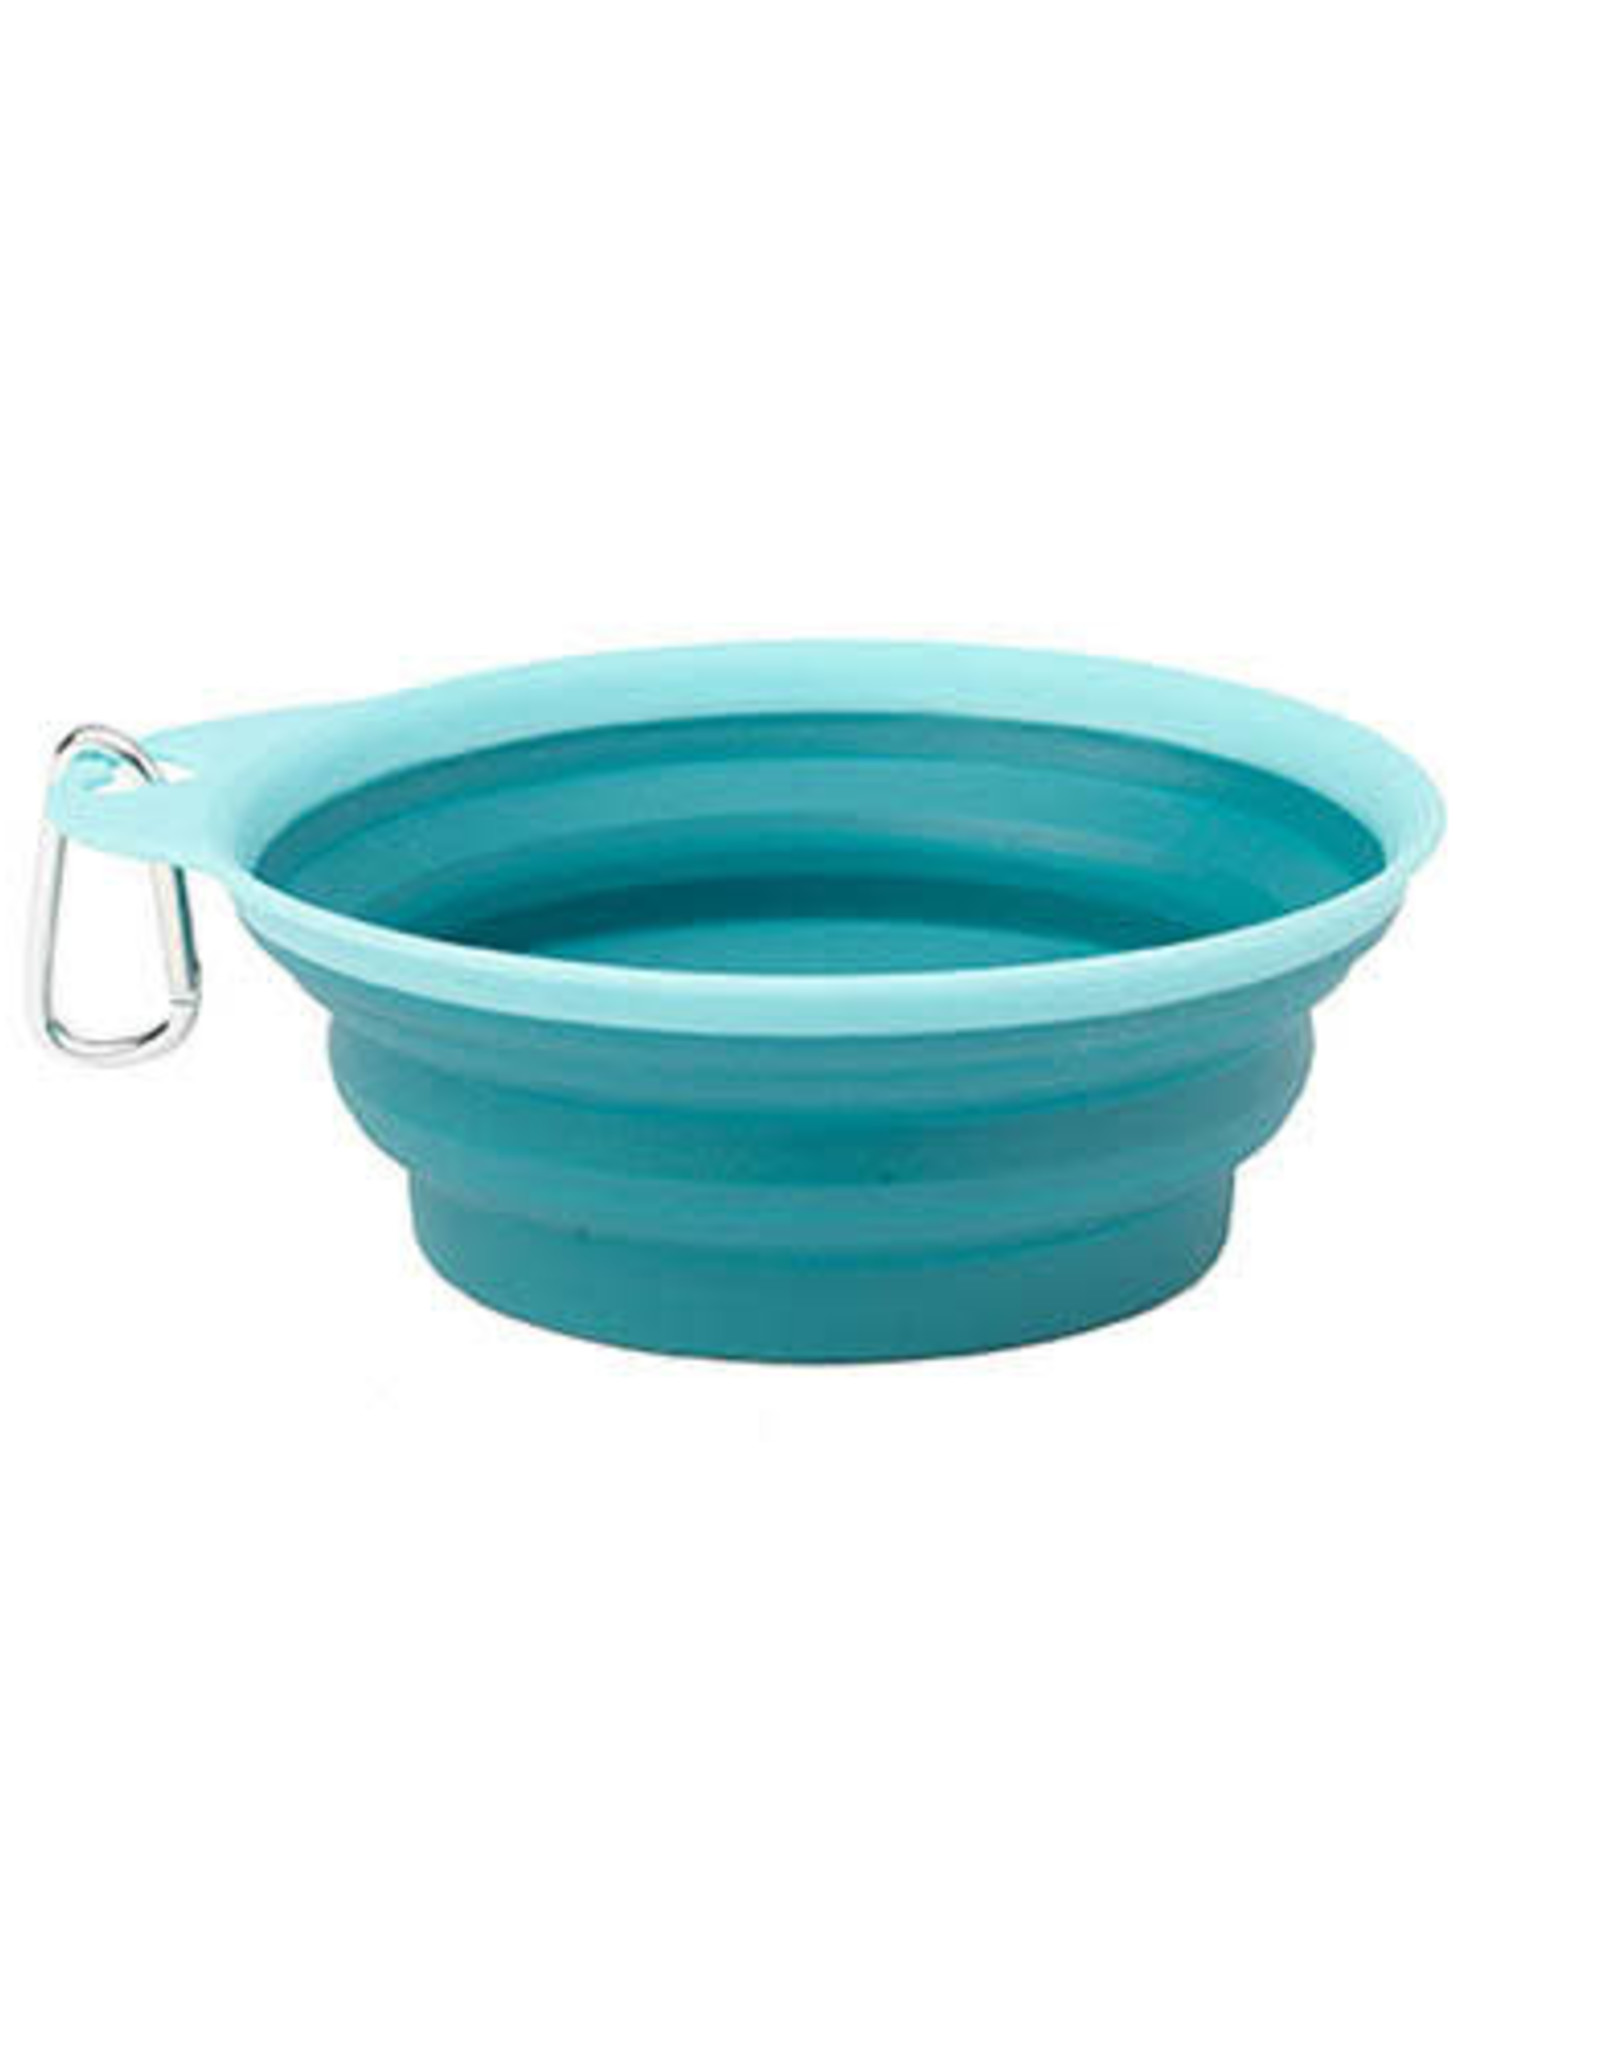 Petrageous Designs Ltd. Collapsible Pet Bowl 1 Cup